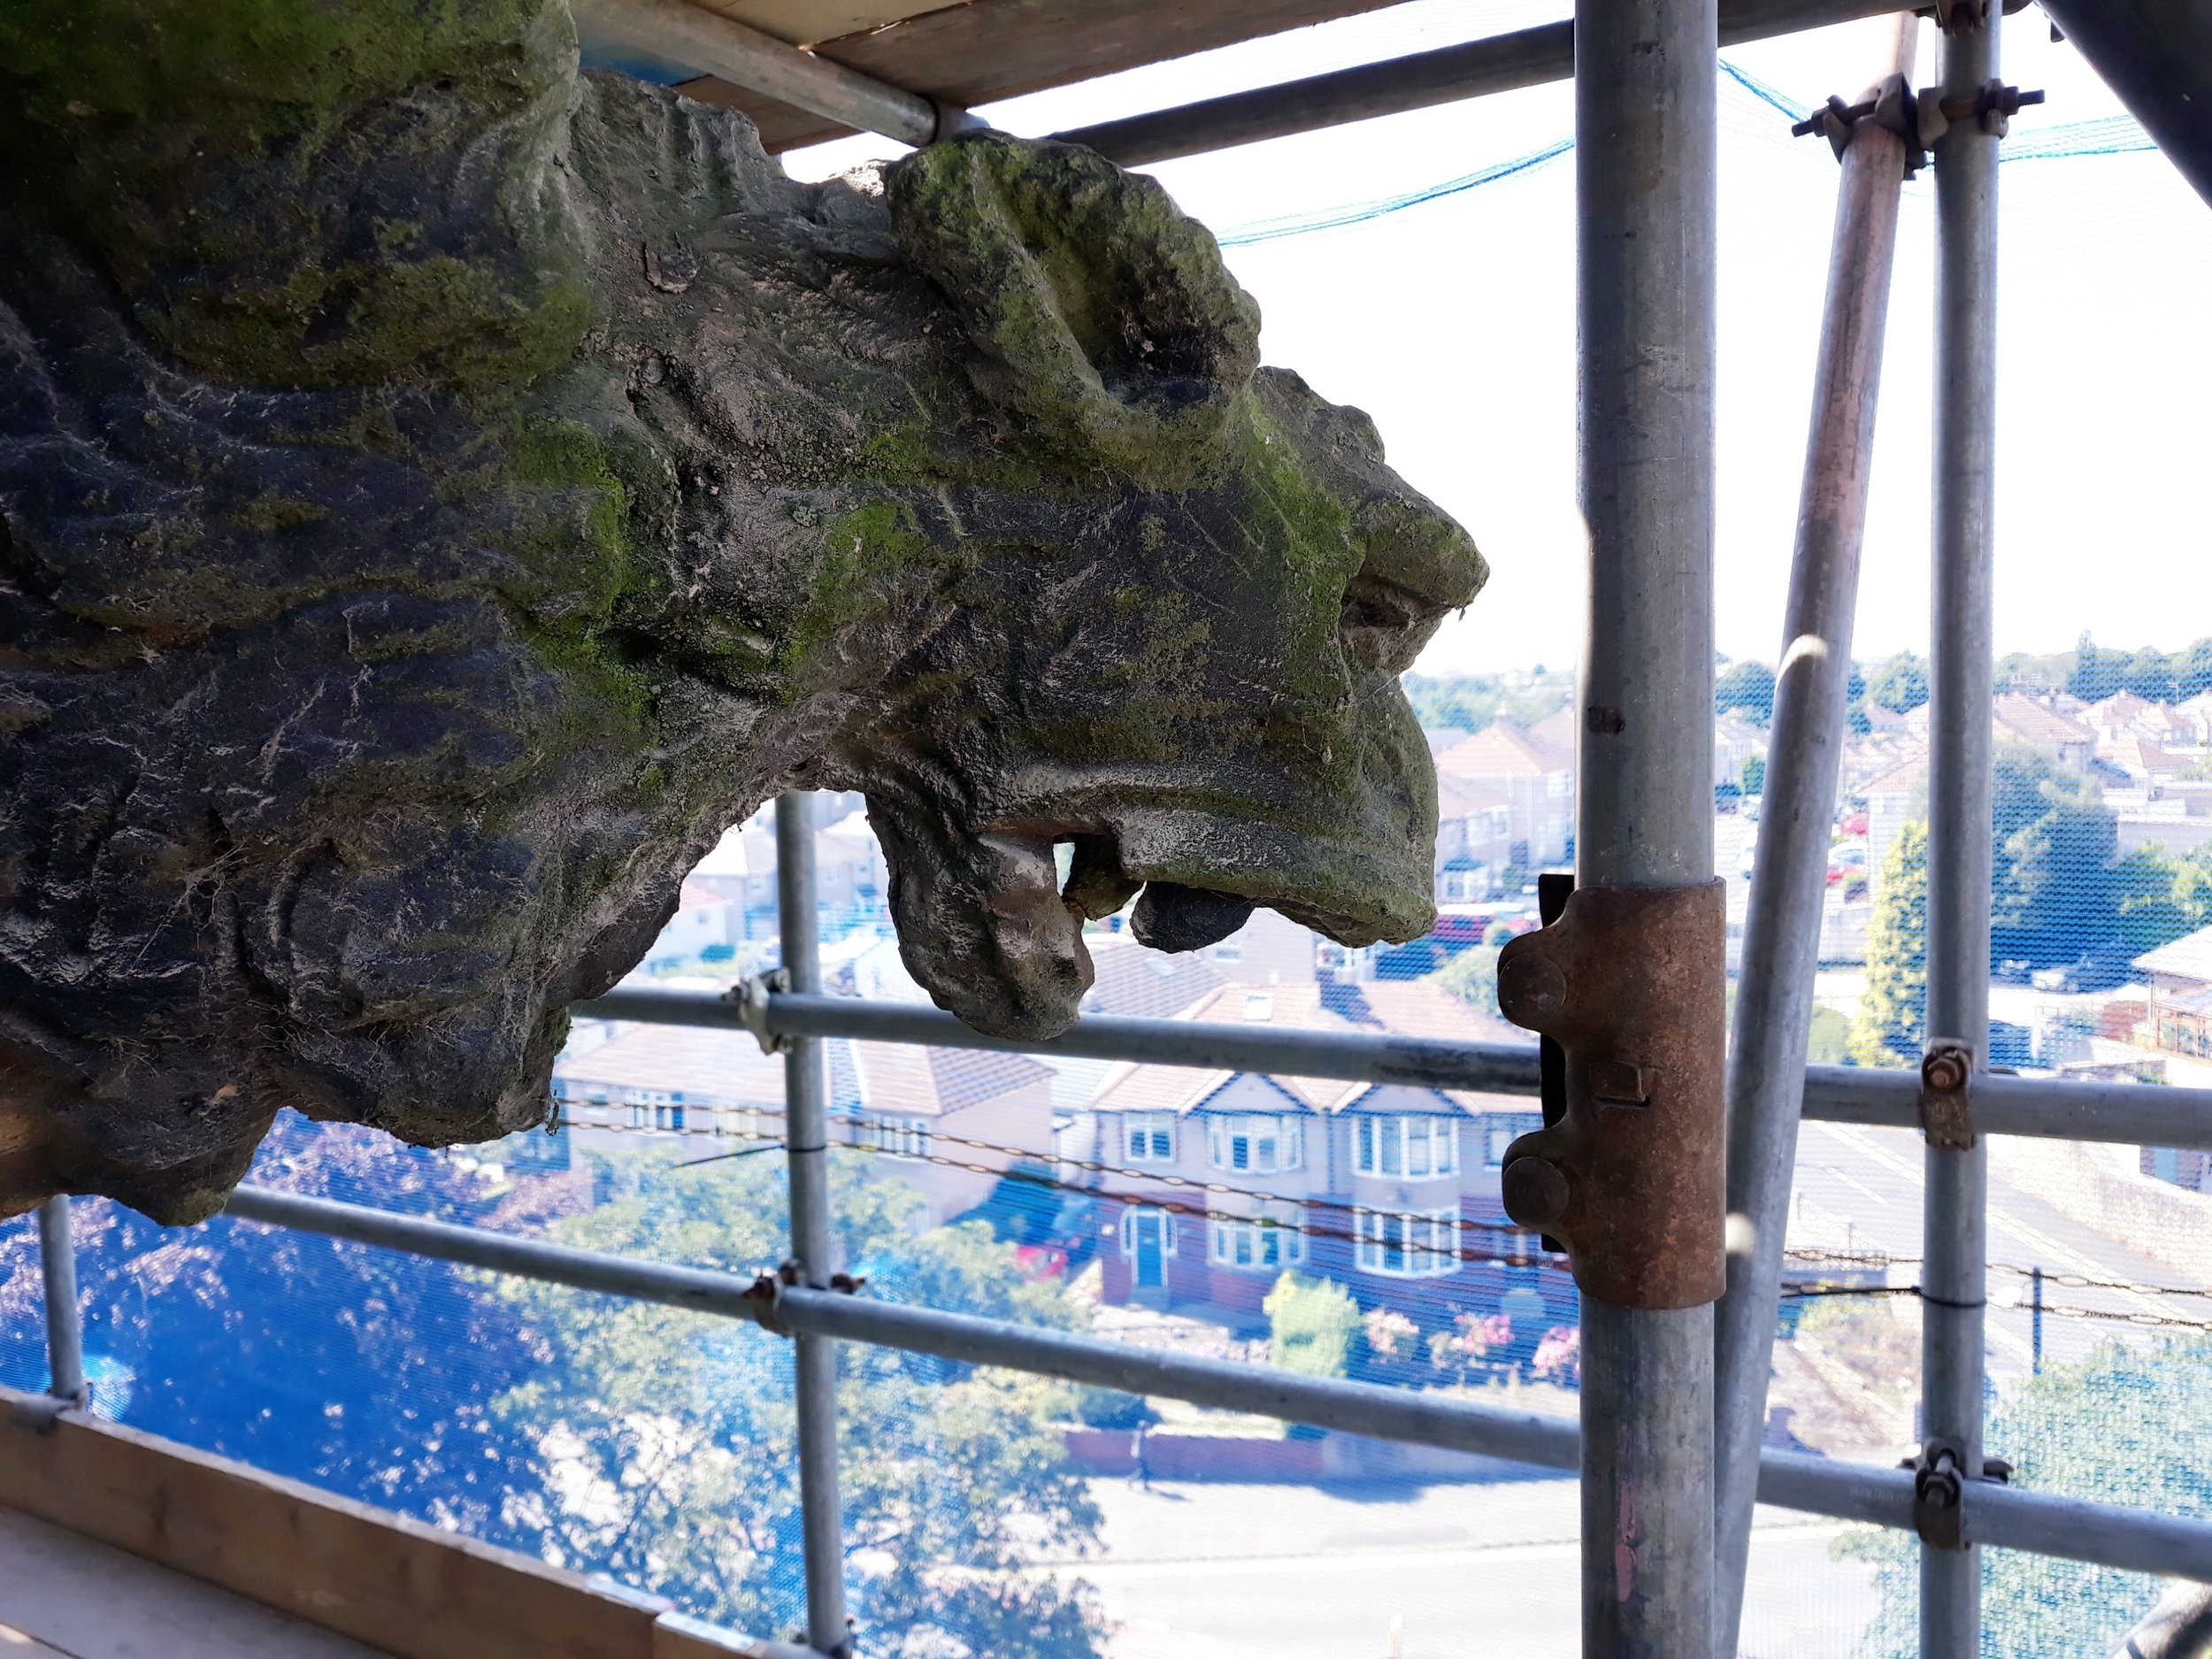 One of the grotesques, looking out from the tower